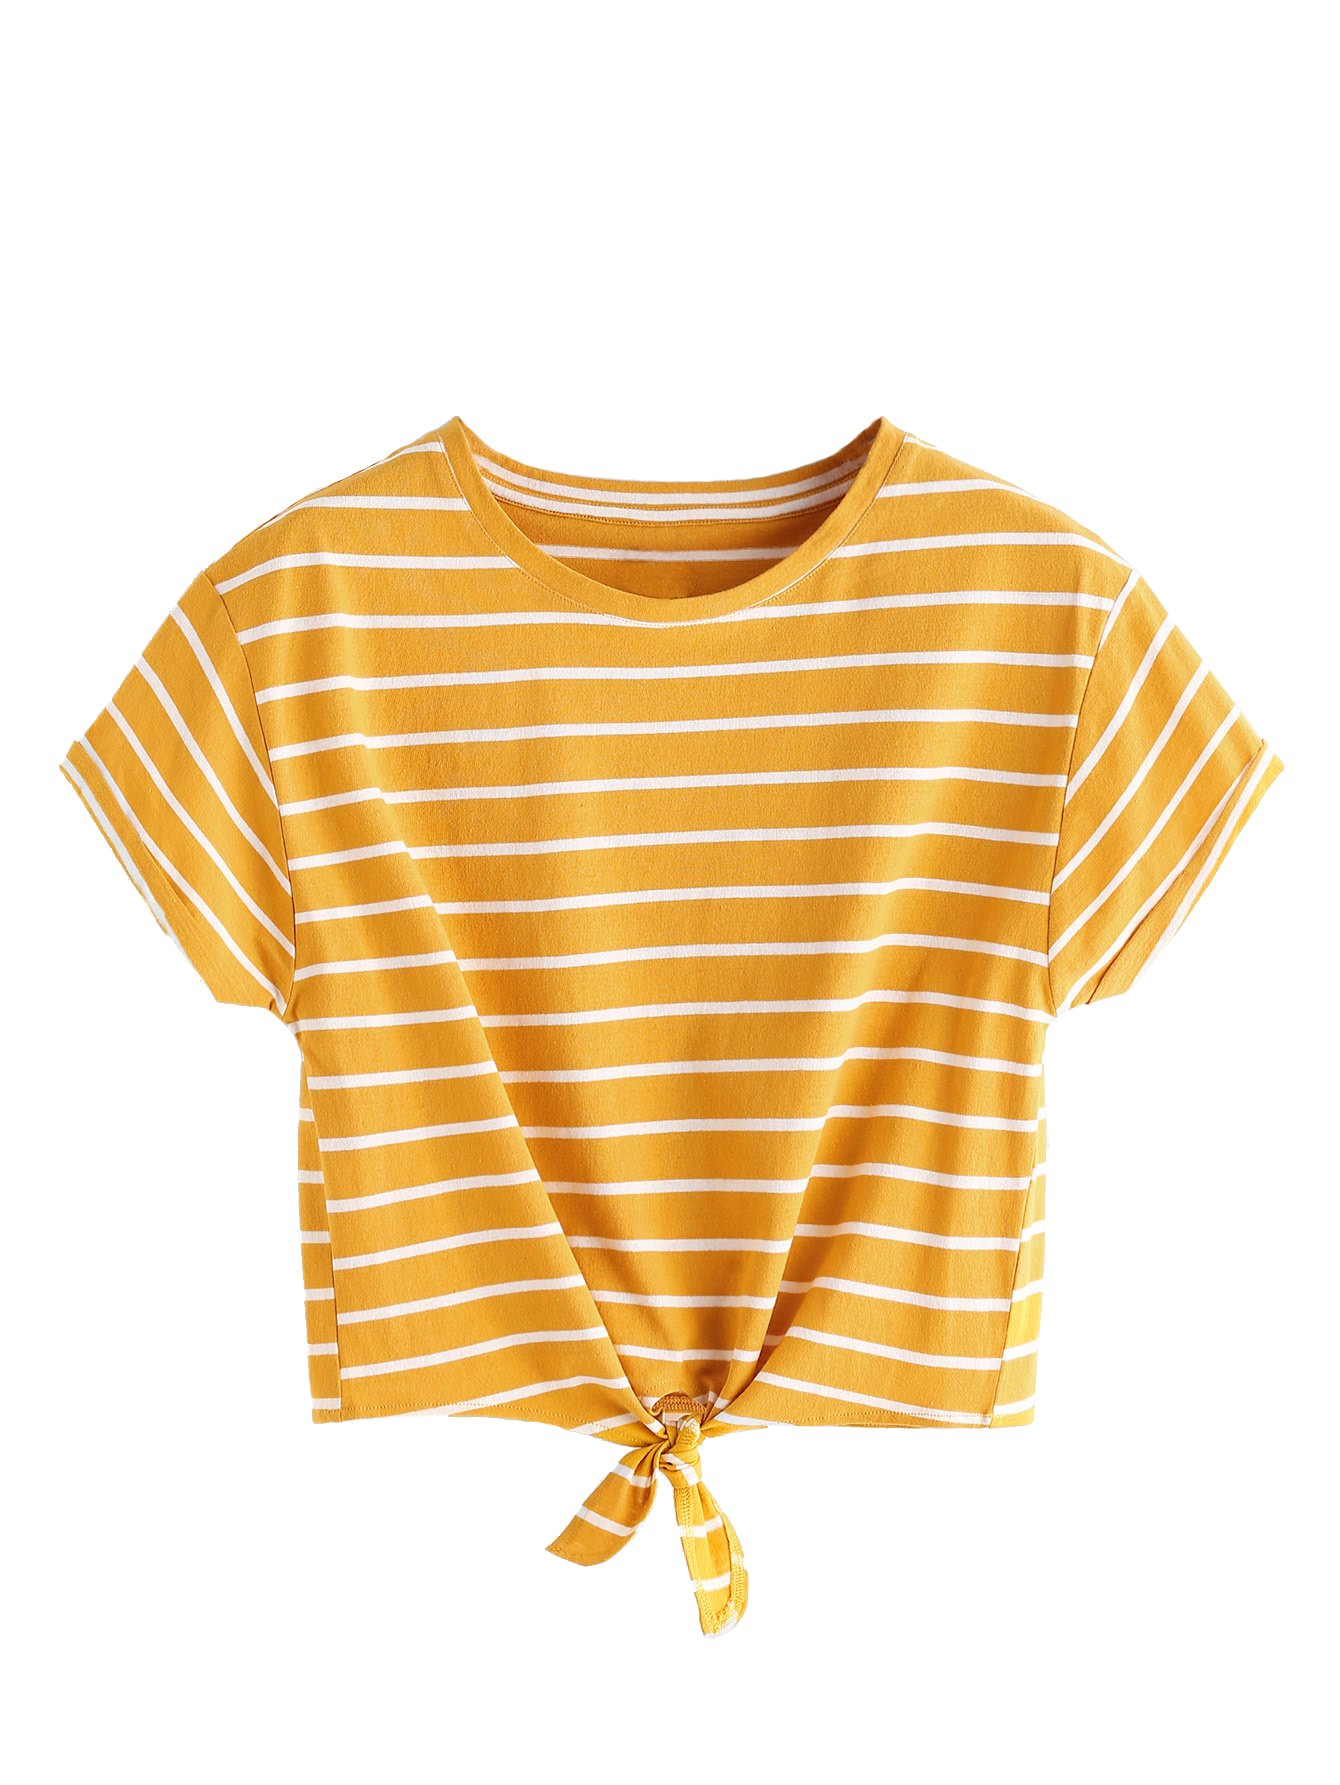 ROMWE Women's Knot Front Long Sleeve Striped Crop Top Tee T-shirt, Yellow & White, Small / US 0-2 by ROMWE